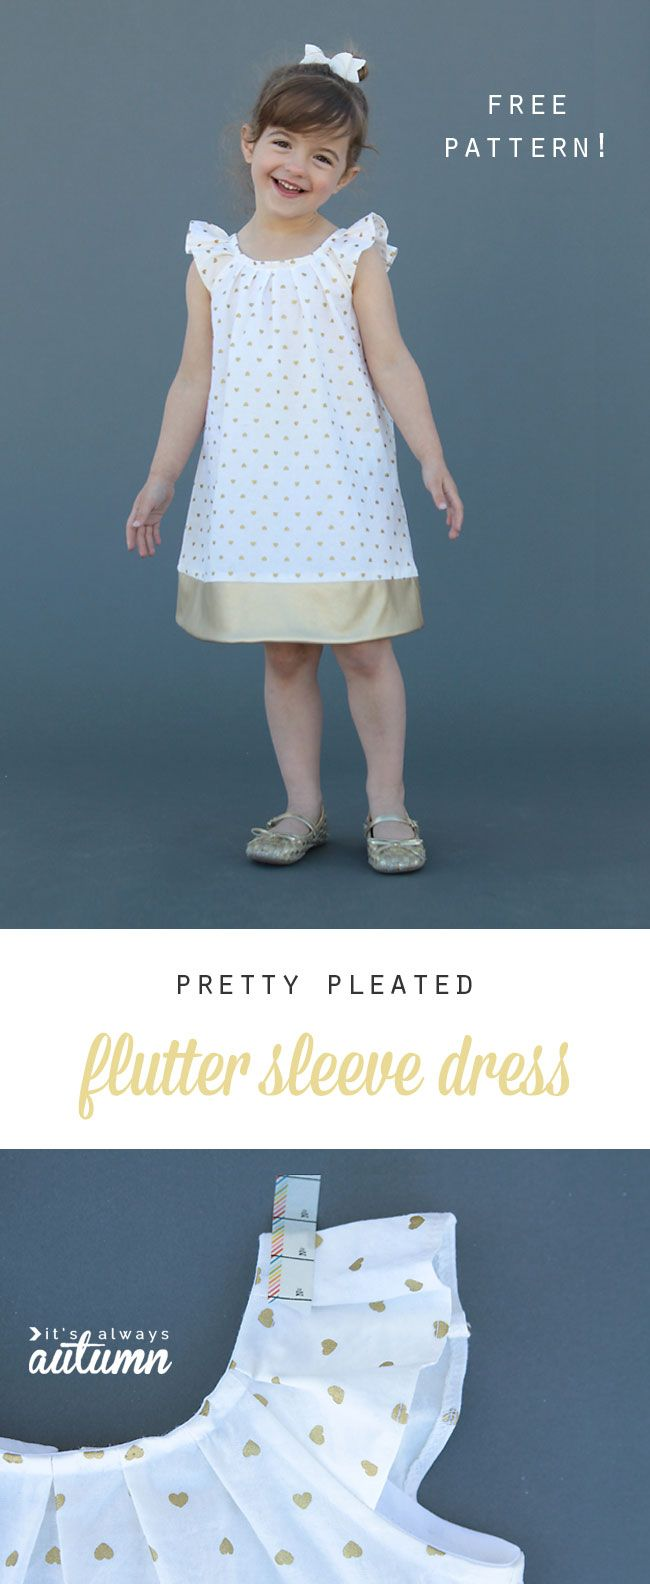 243 best free girls dress patterns images on pinterest sewing pleated flutter sleeve dress free pattern in size 4t jeuxipadfo Choice Image